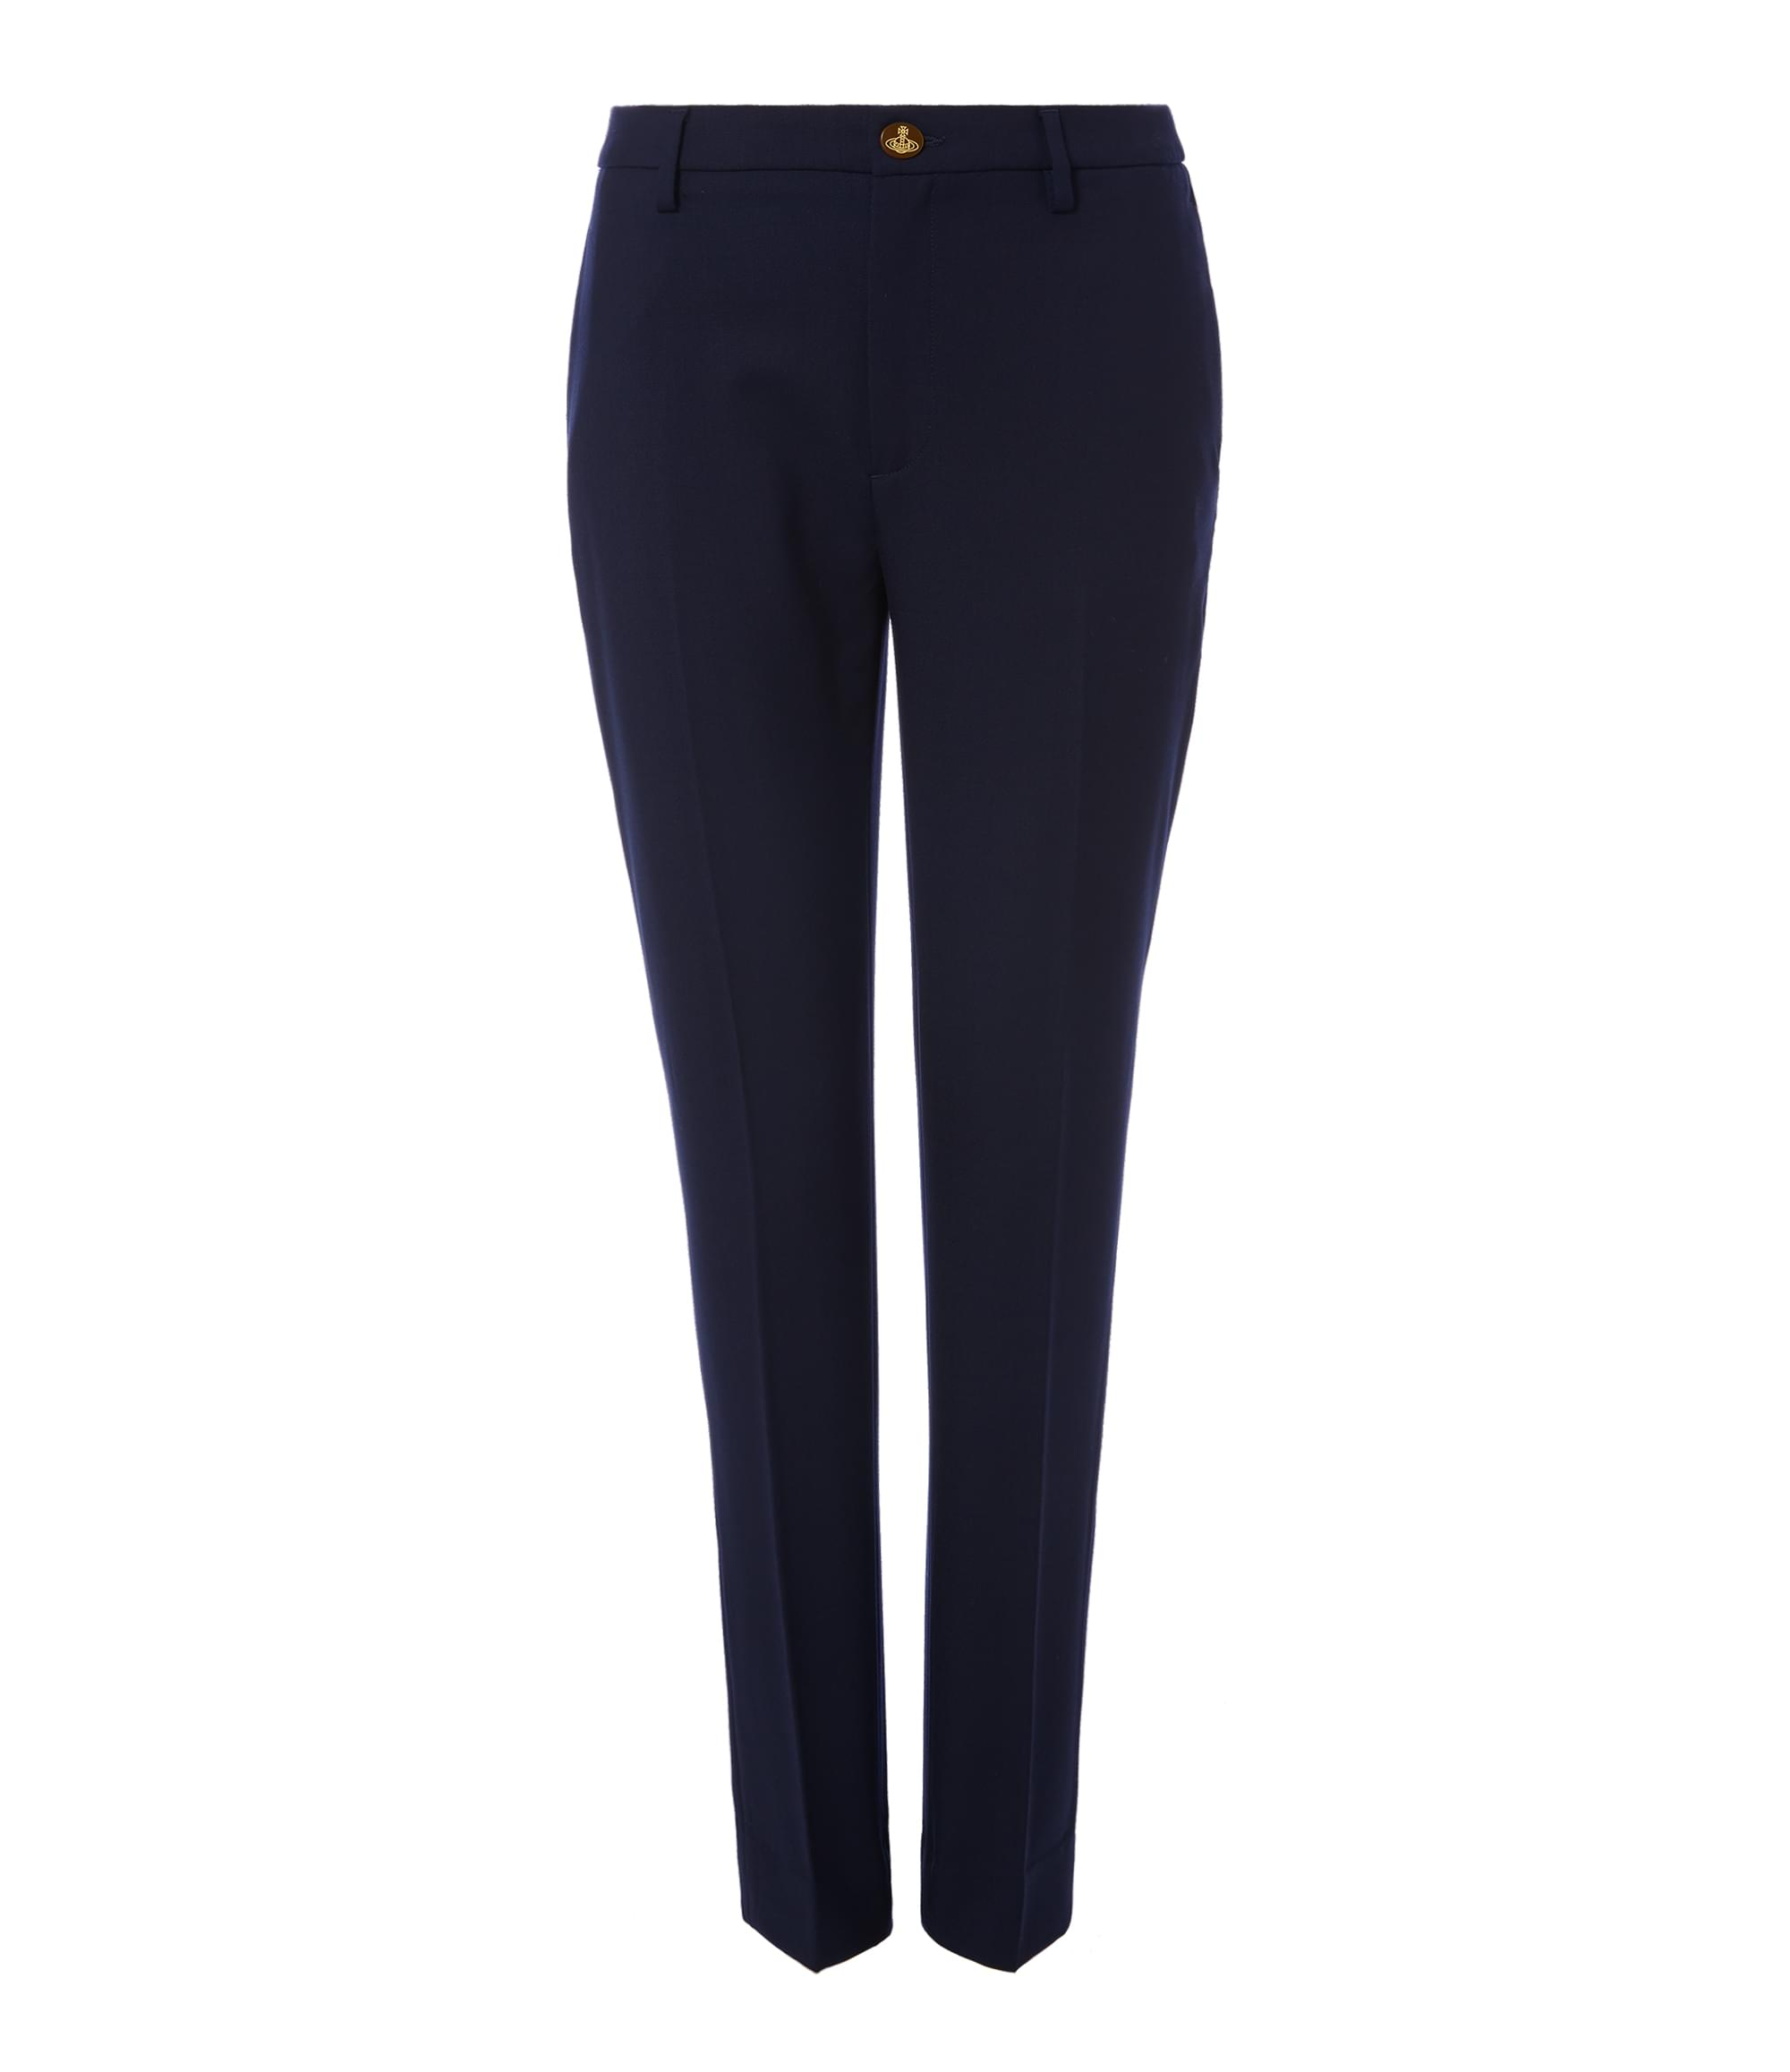 Vivienne Westwood Tuxedo Trousers Navy